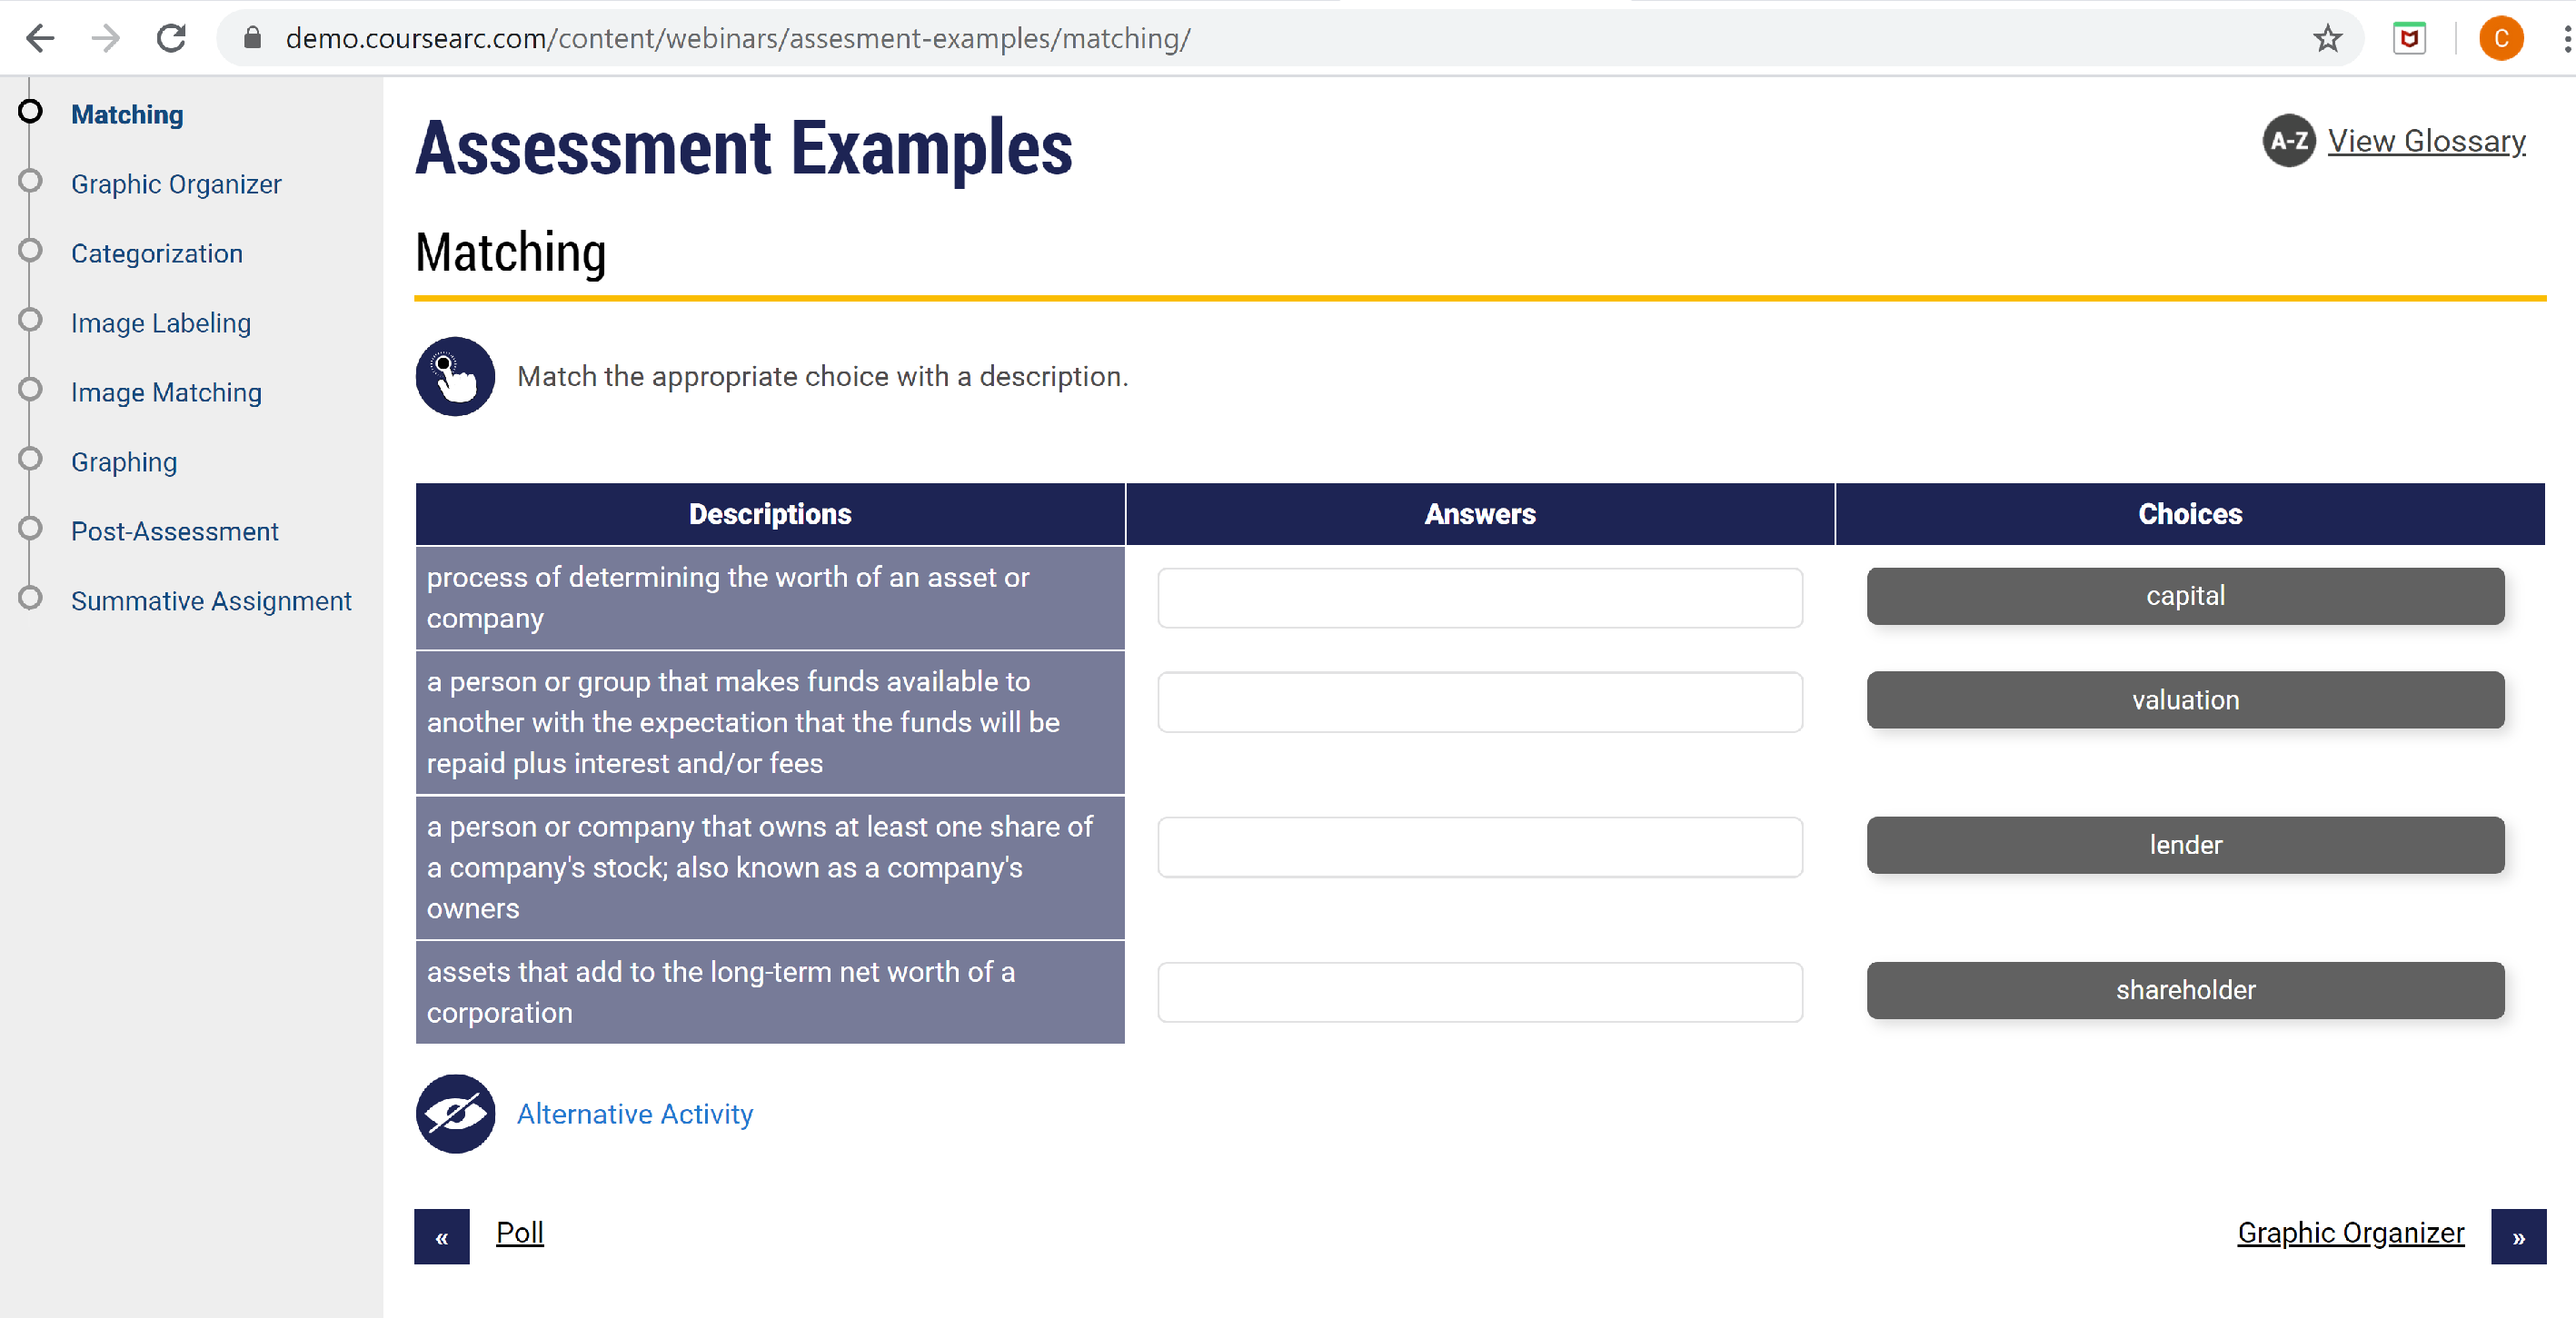 Example of assessment tool in Coursearc